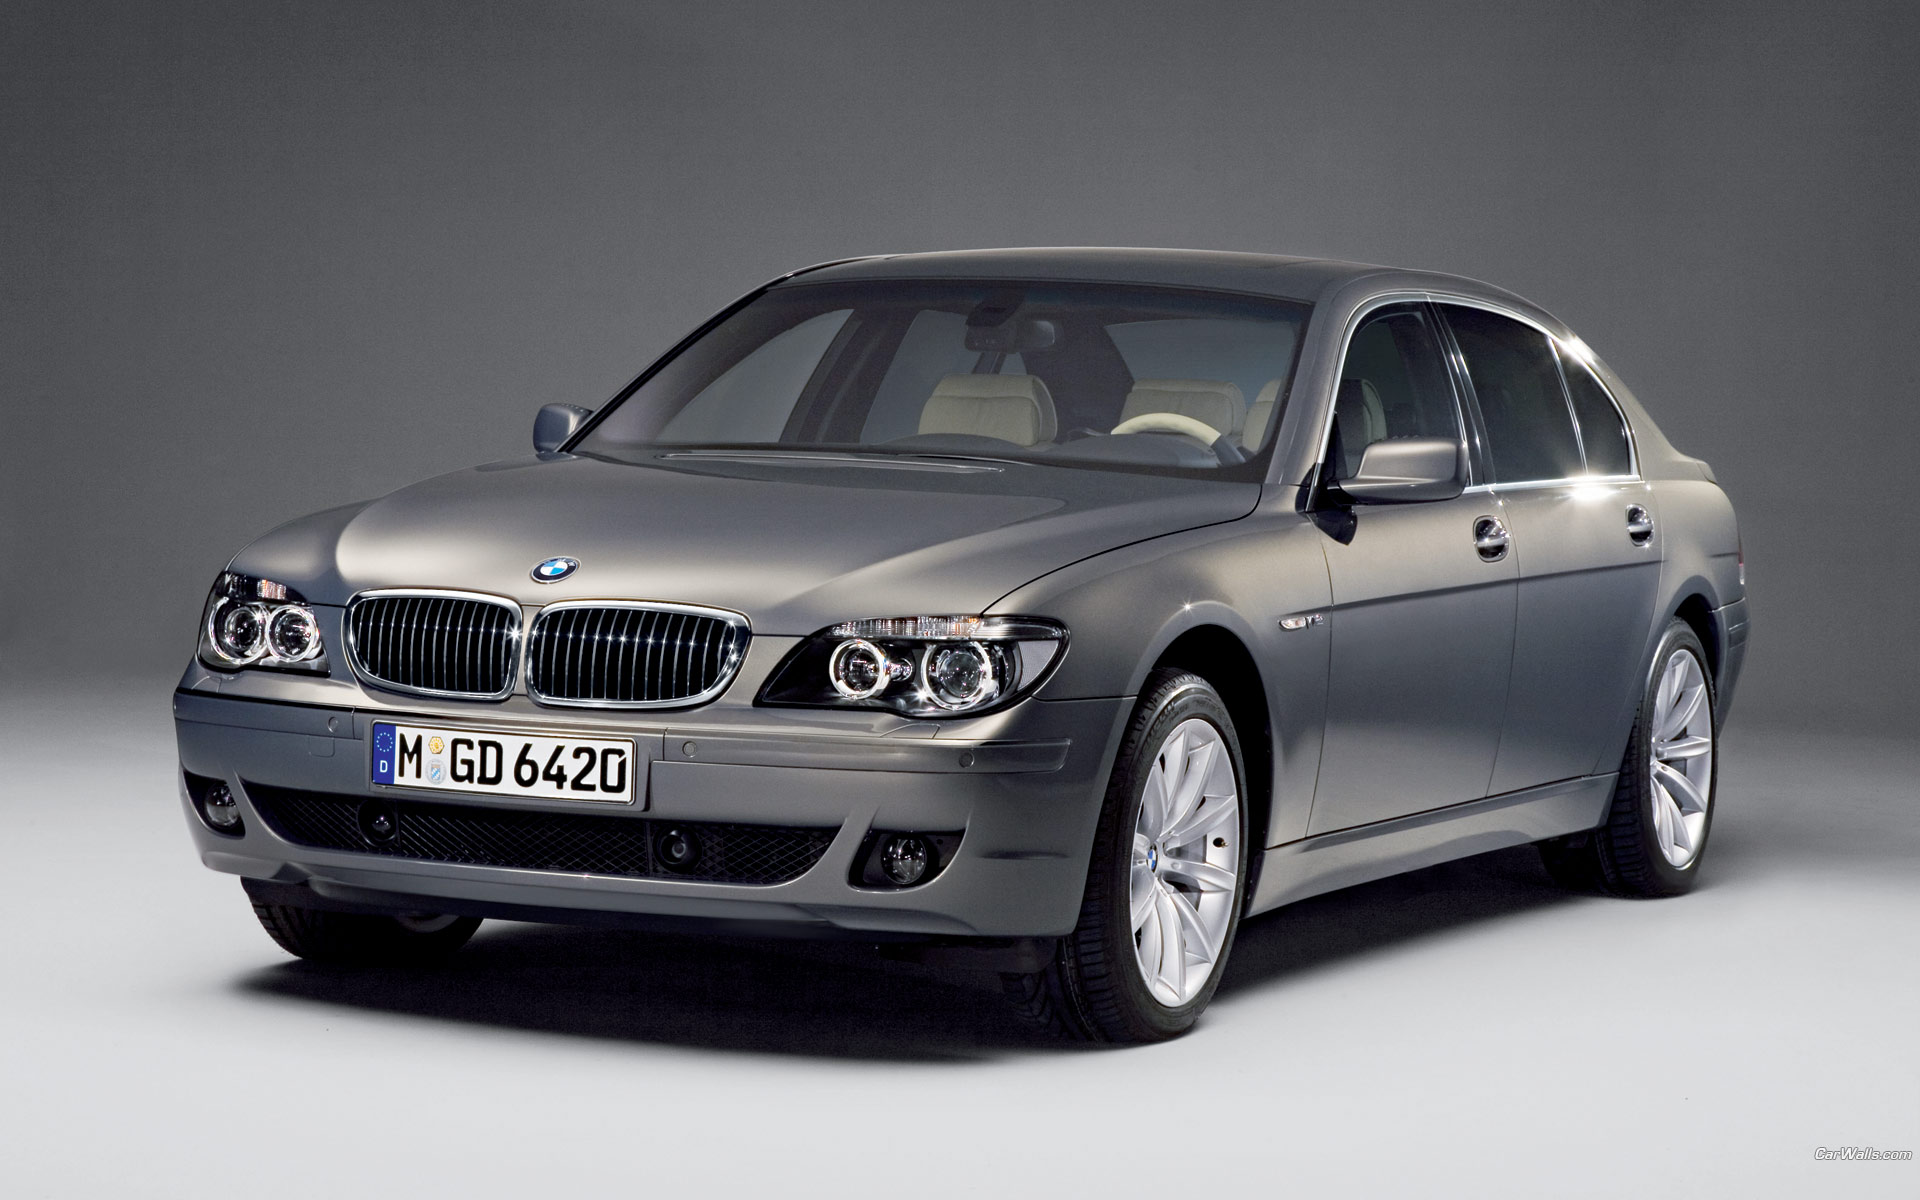 bmw 730d 2007 review amazing pictures and images look at the car. Black Bedroom Furniture Sets. Home Design Ideas